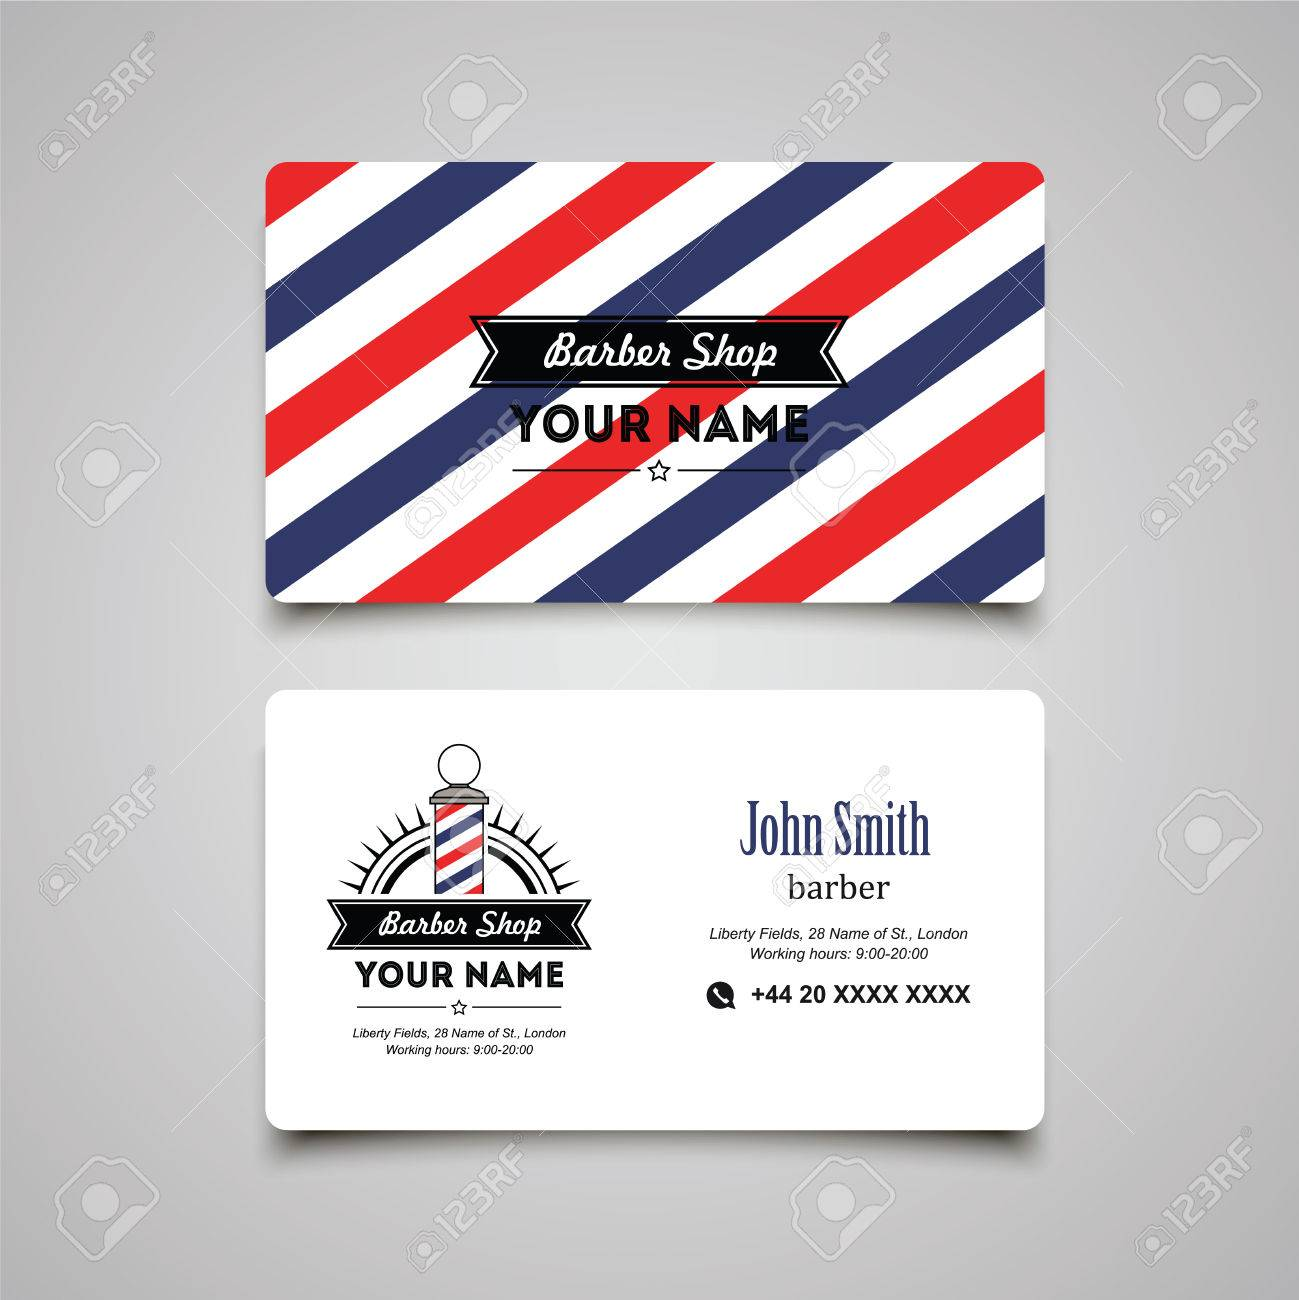 Hair salon barber shop business card design template royalty free hair salon barber shop business card design template stock vector 43247448 flashek Choice Image